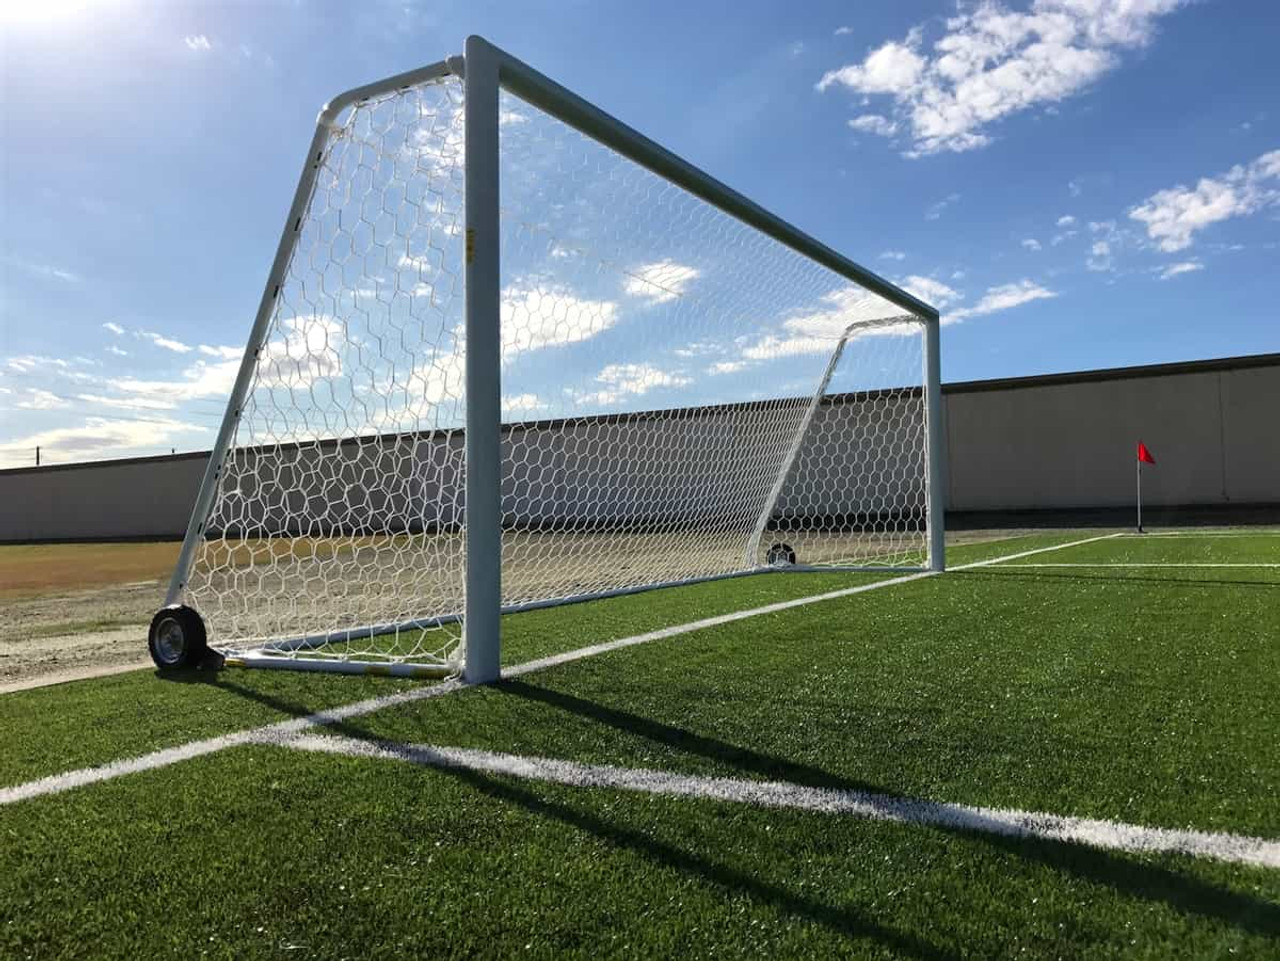 how to build a regulation size soccer goal